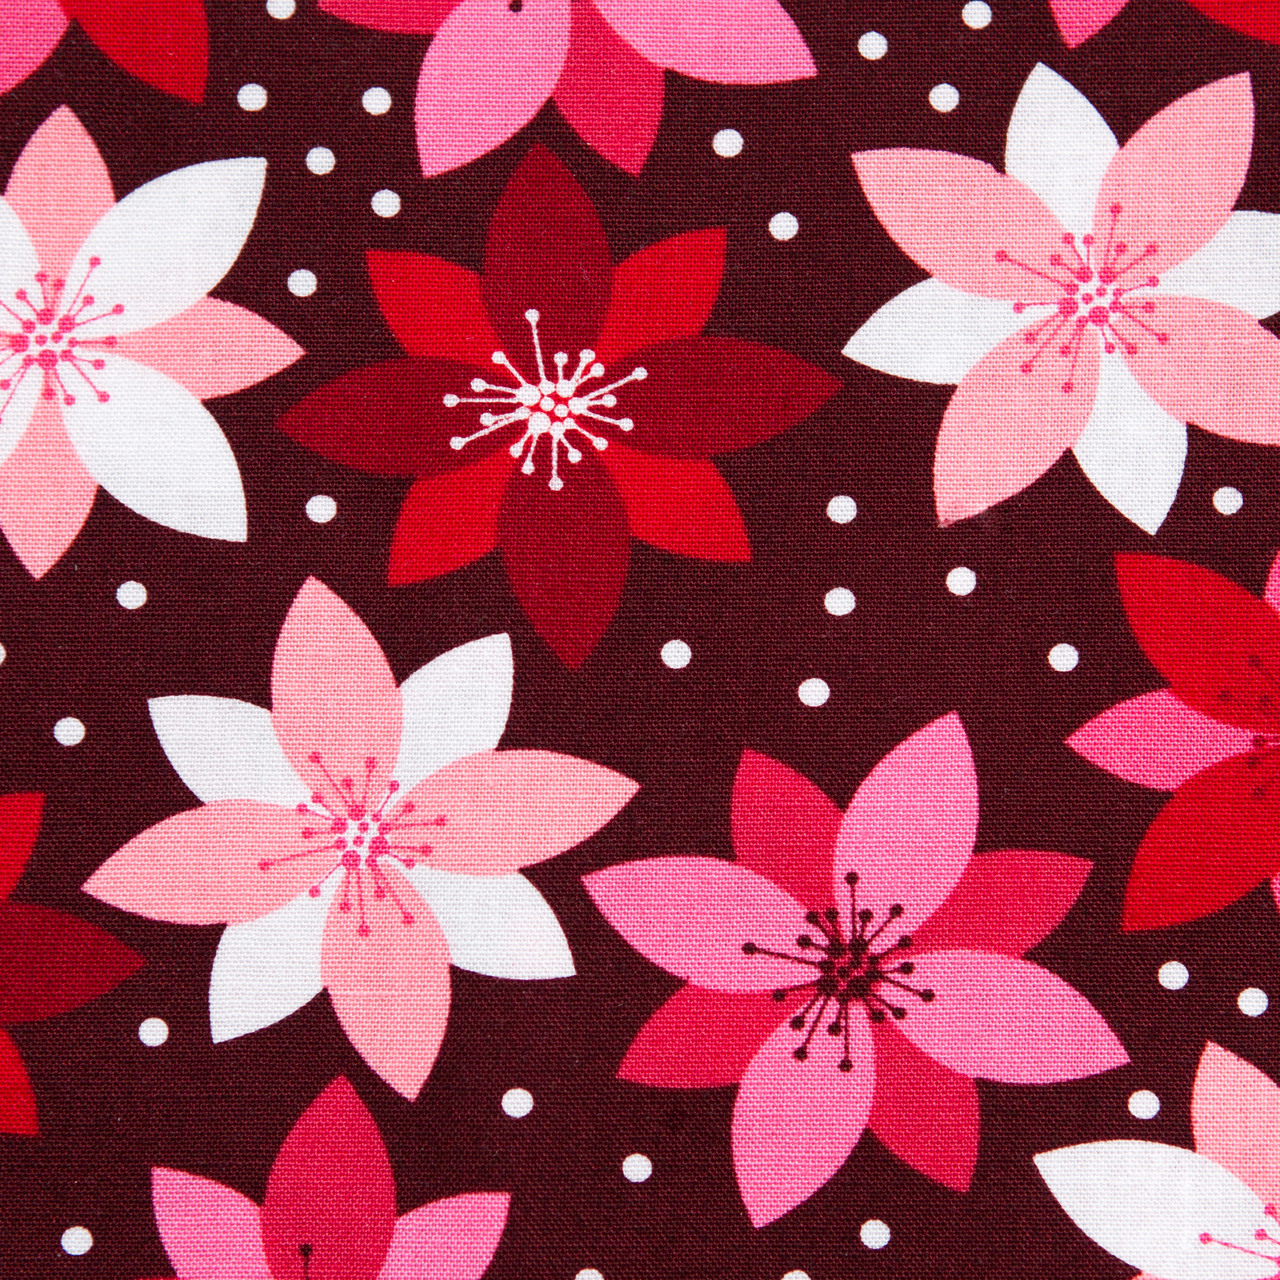 Magic Poinsettia print